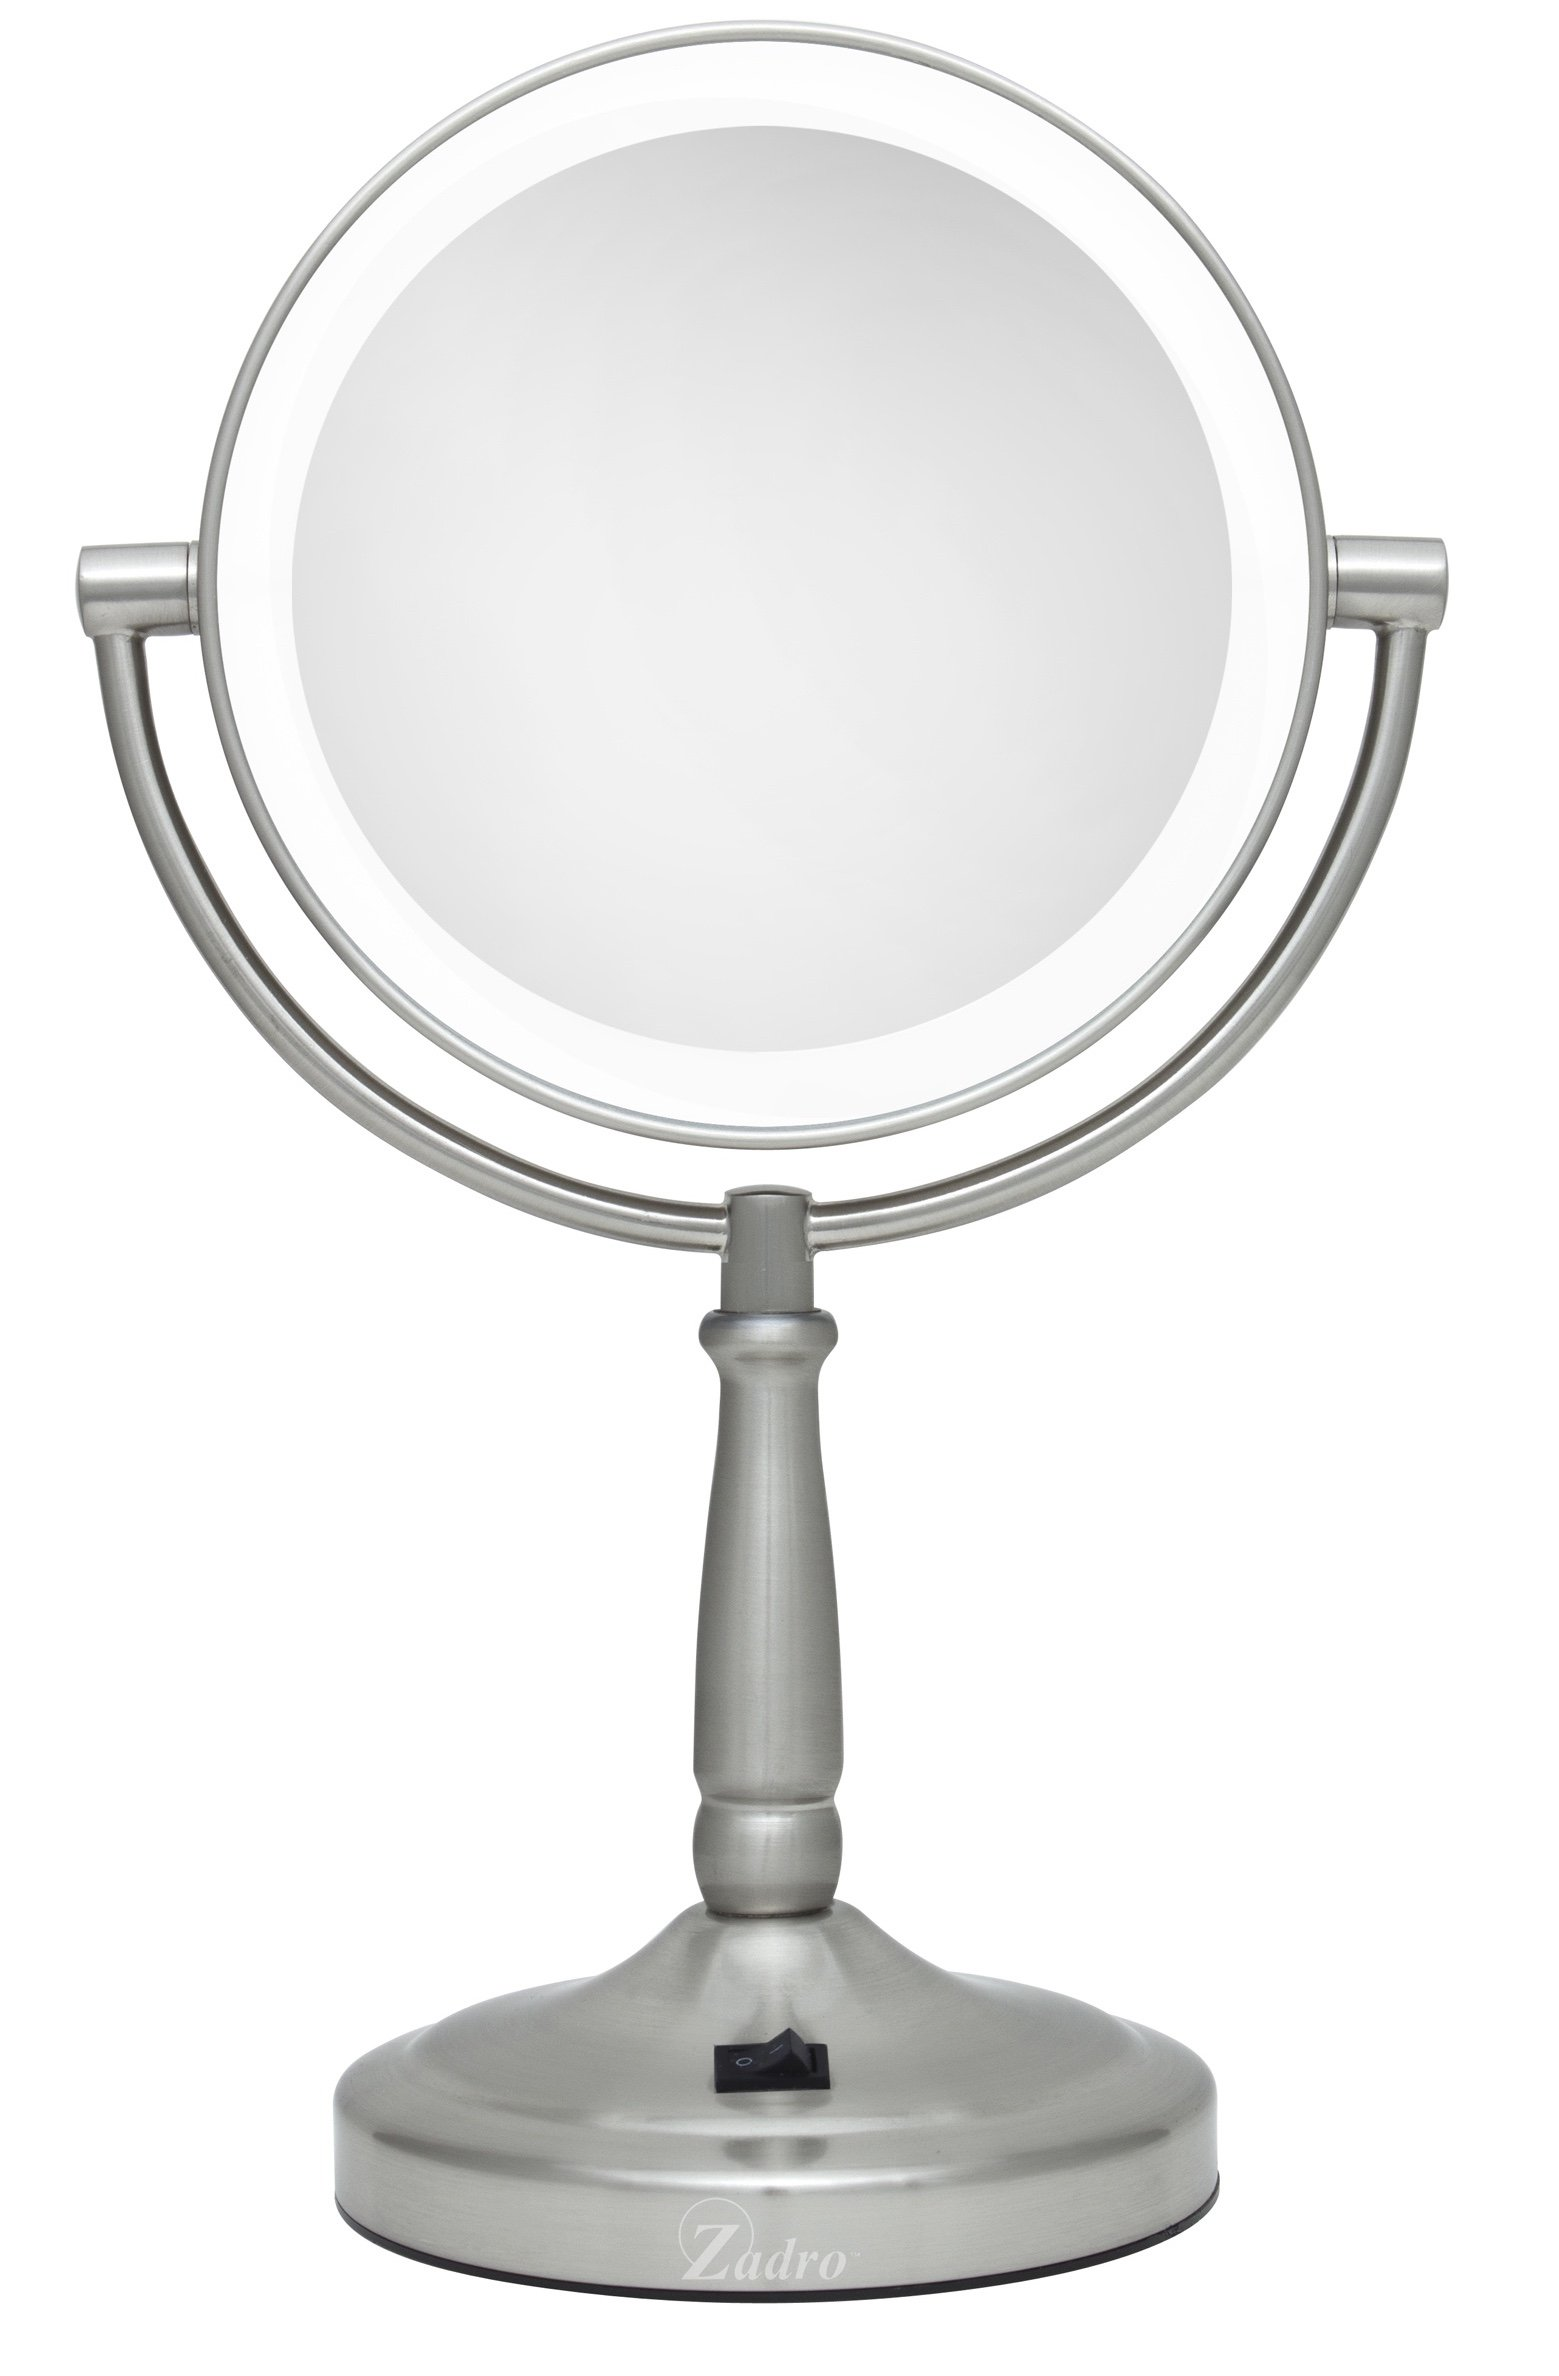 Zadro 10X/1X Magnification Dual-Sided Vanity Mirror, Satin Nickel by Zadro